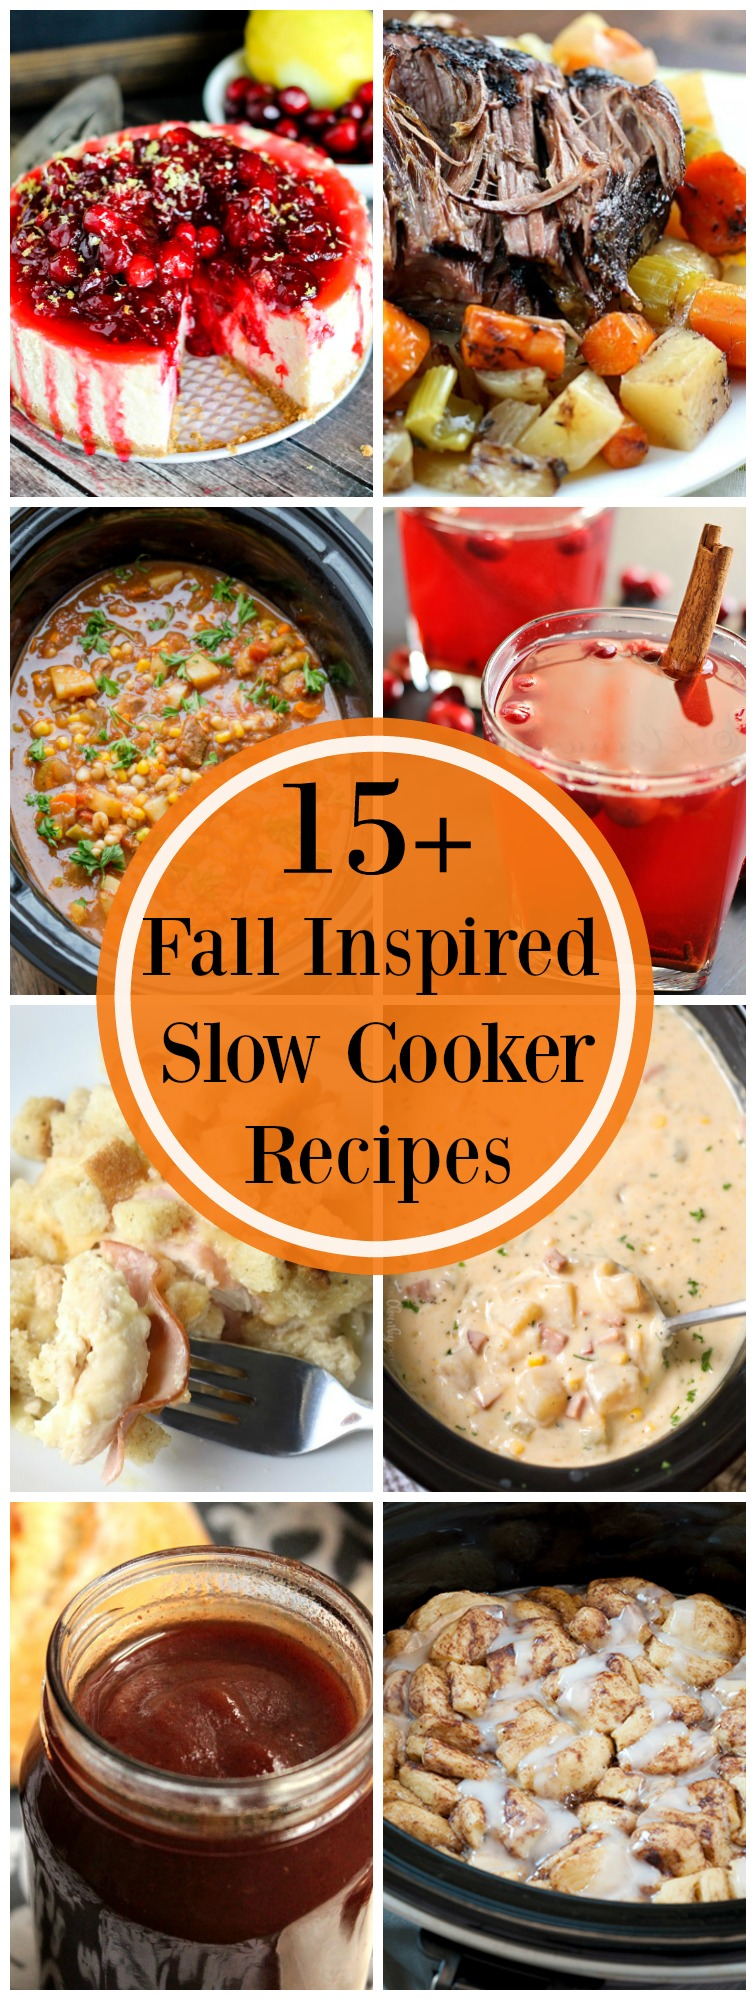 15+ Fall Inspired Slow Cooker Recipes are a great way to celebrate the season. Great comfort food perfect for the Fall and Winter. #crockpot #slowcooker #comfortfood